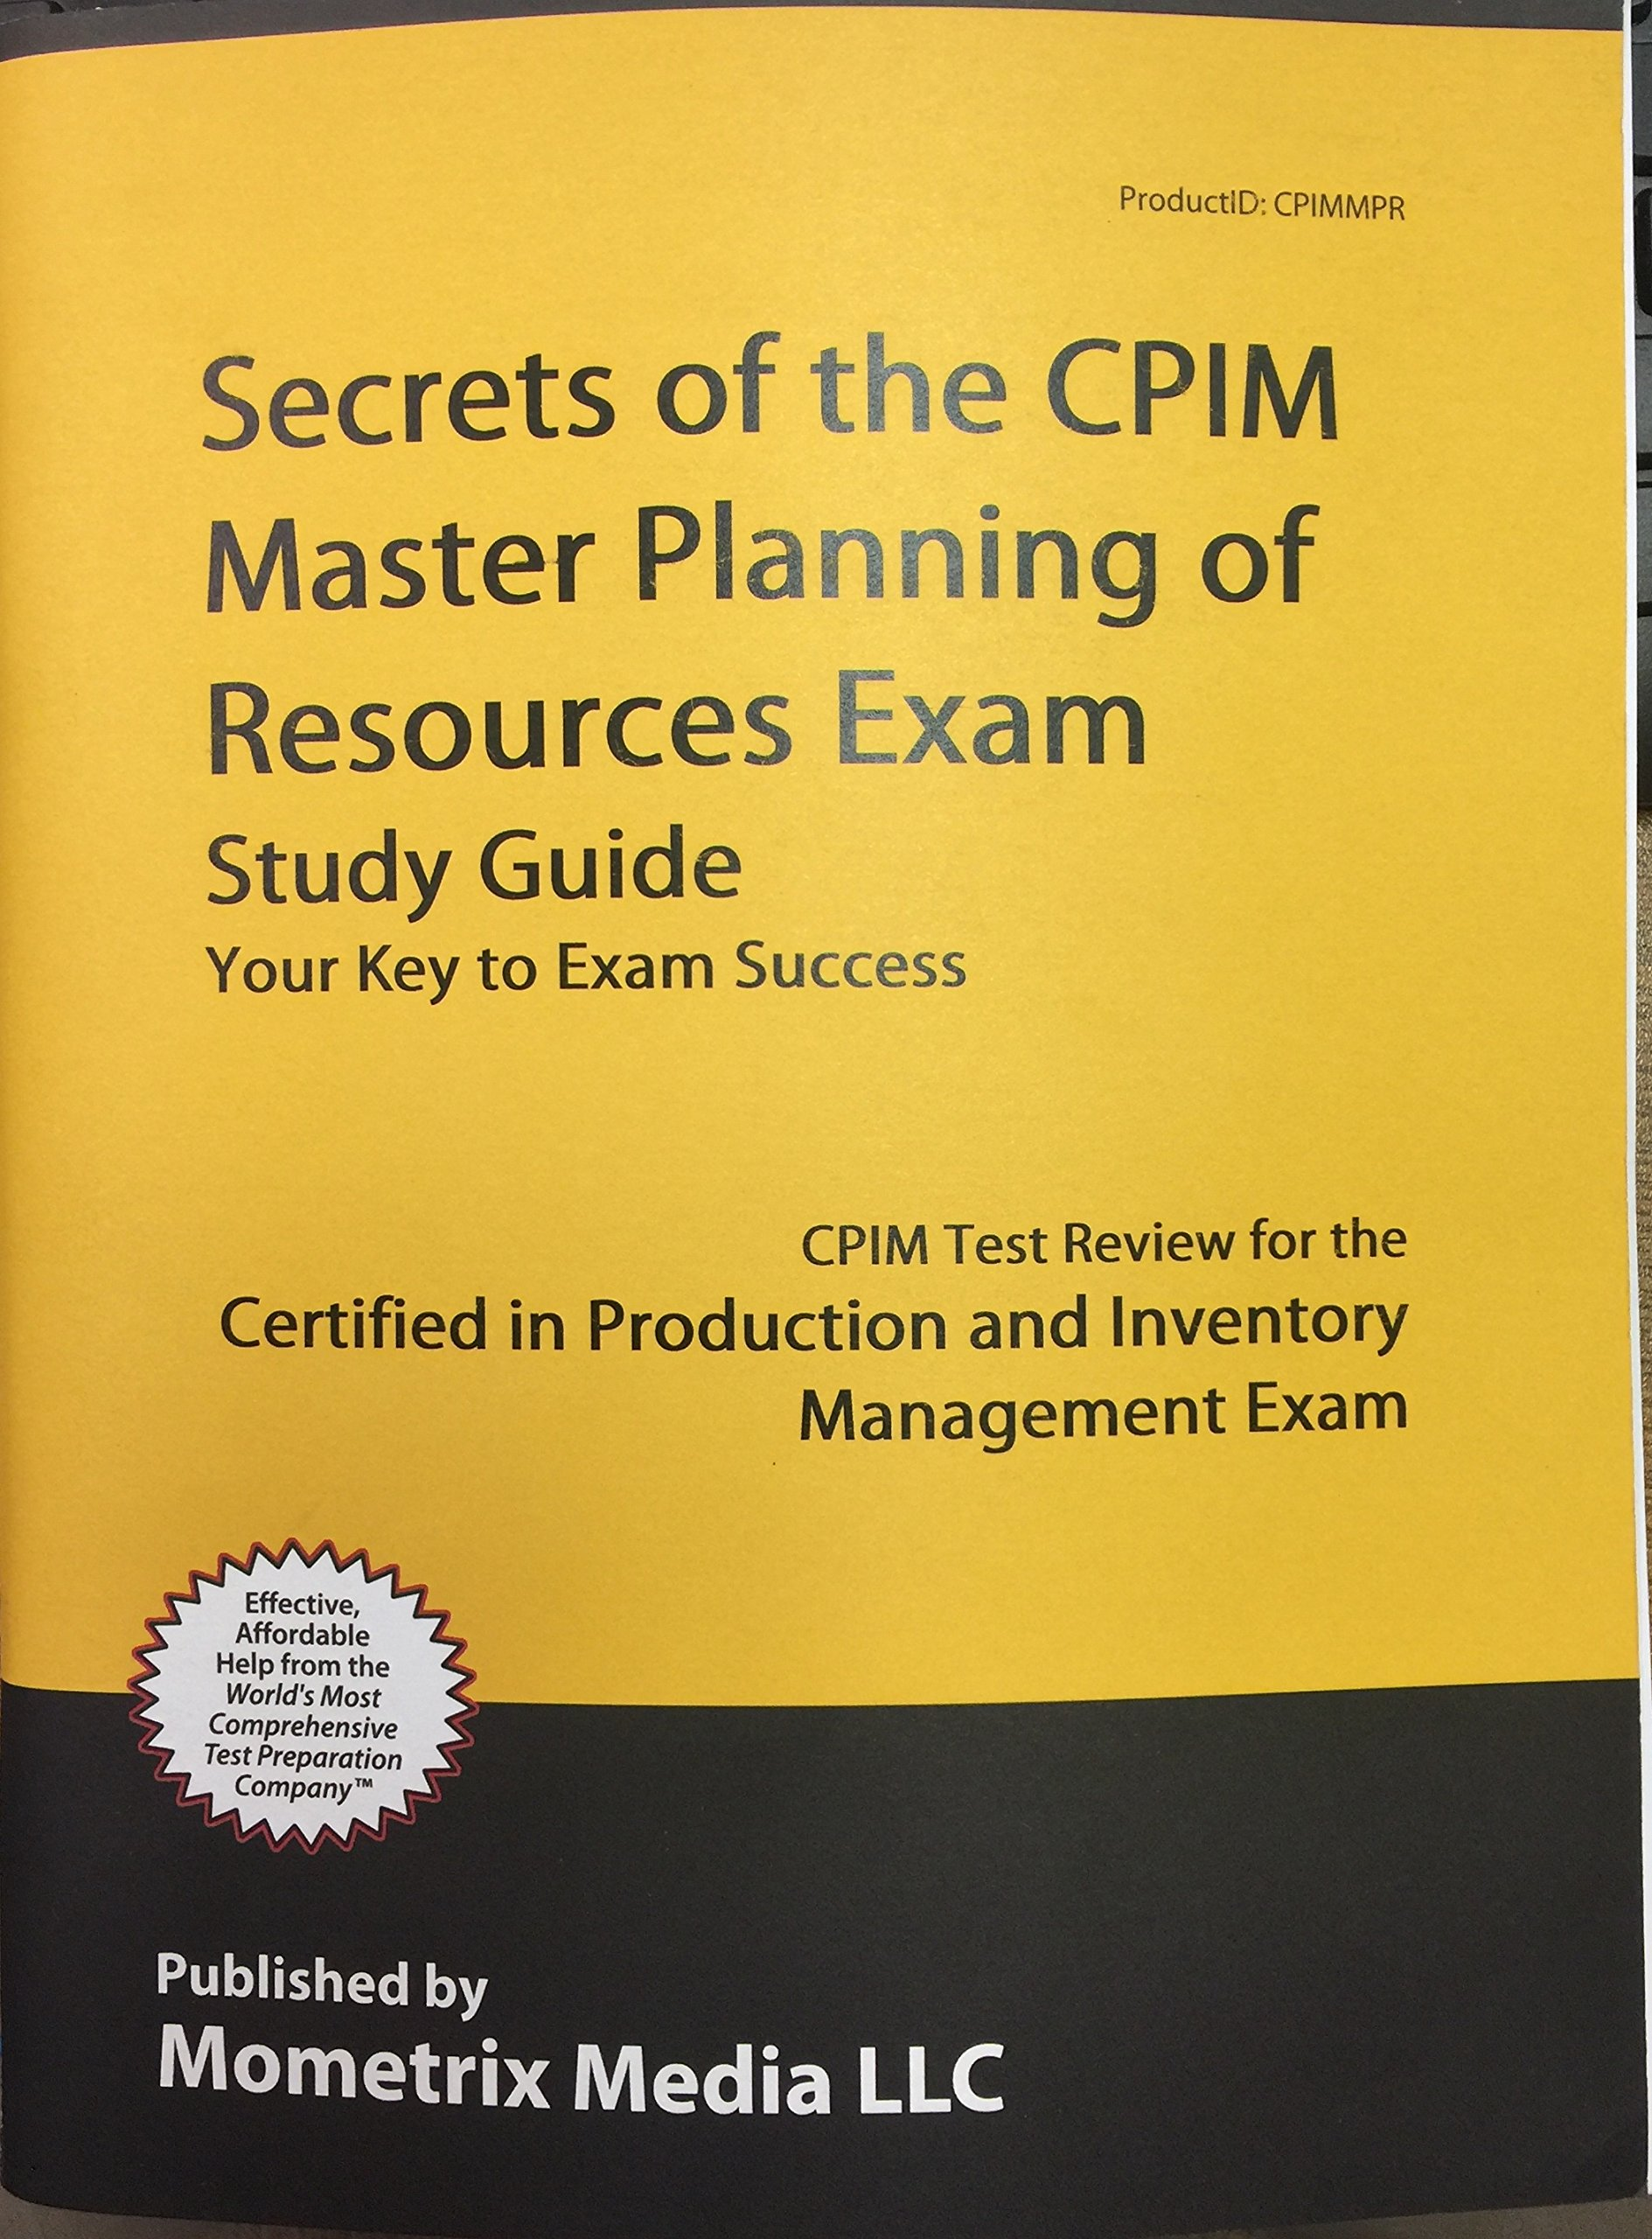 Secrets of the CPIM Execution and Control of Operations Exam